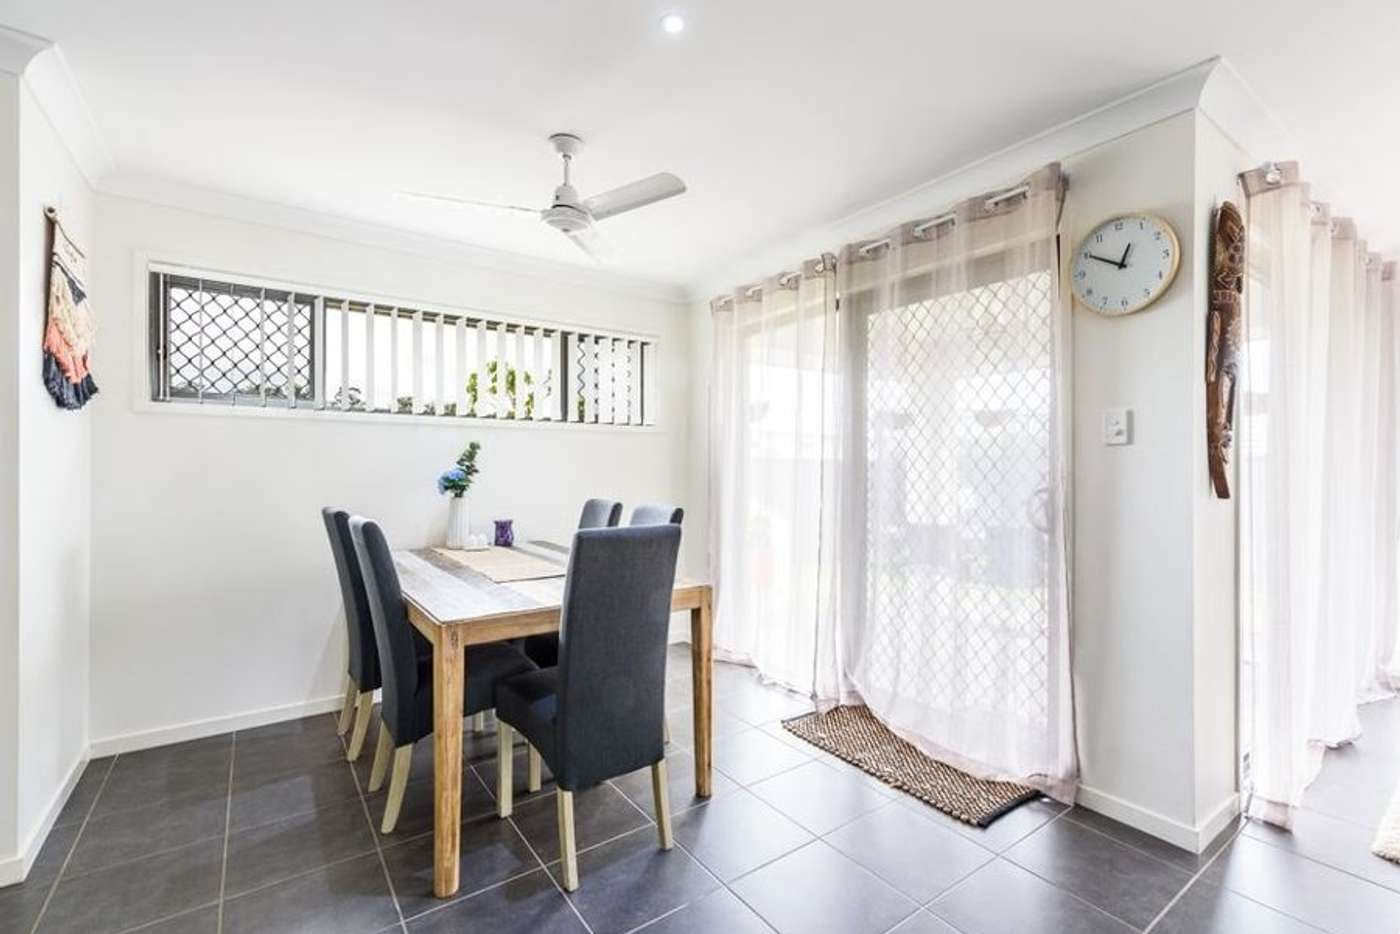 Sixth view of Homely house listing, 20 Azure Way, Coomera QLD 4209